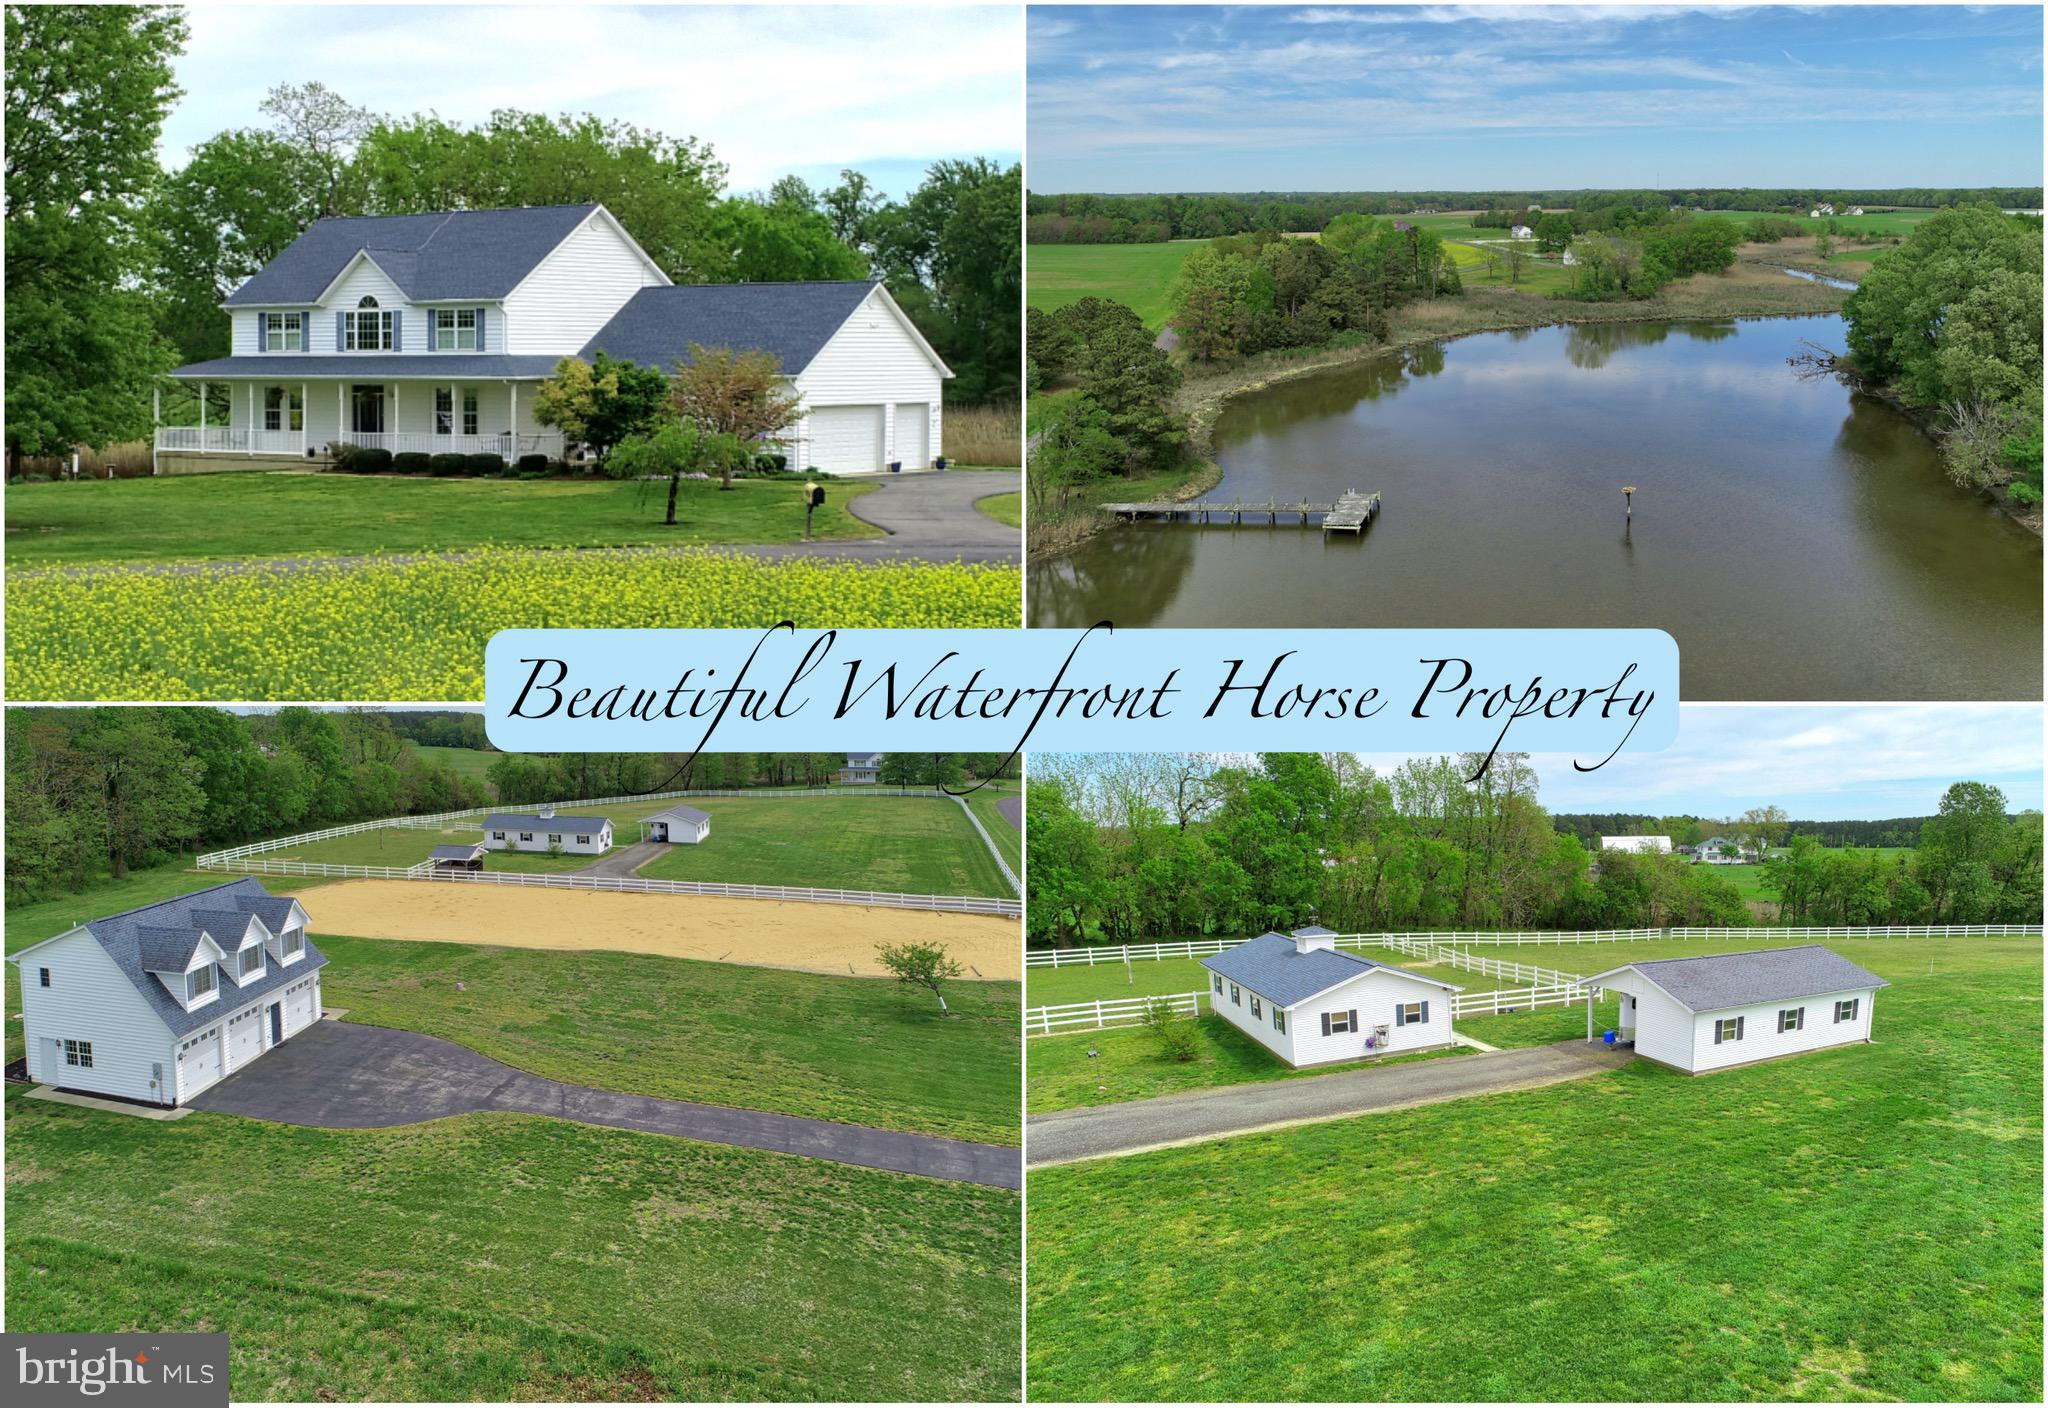 This horse property has been meticulously maintained and it is very well appointed! This is a specia